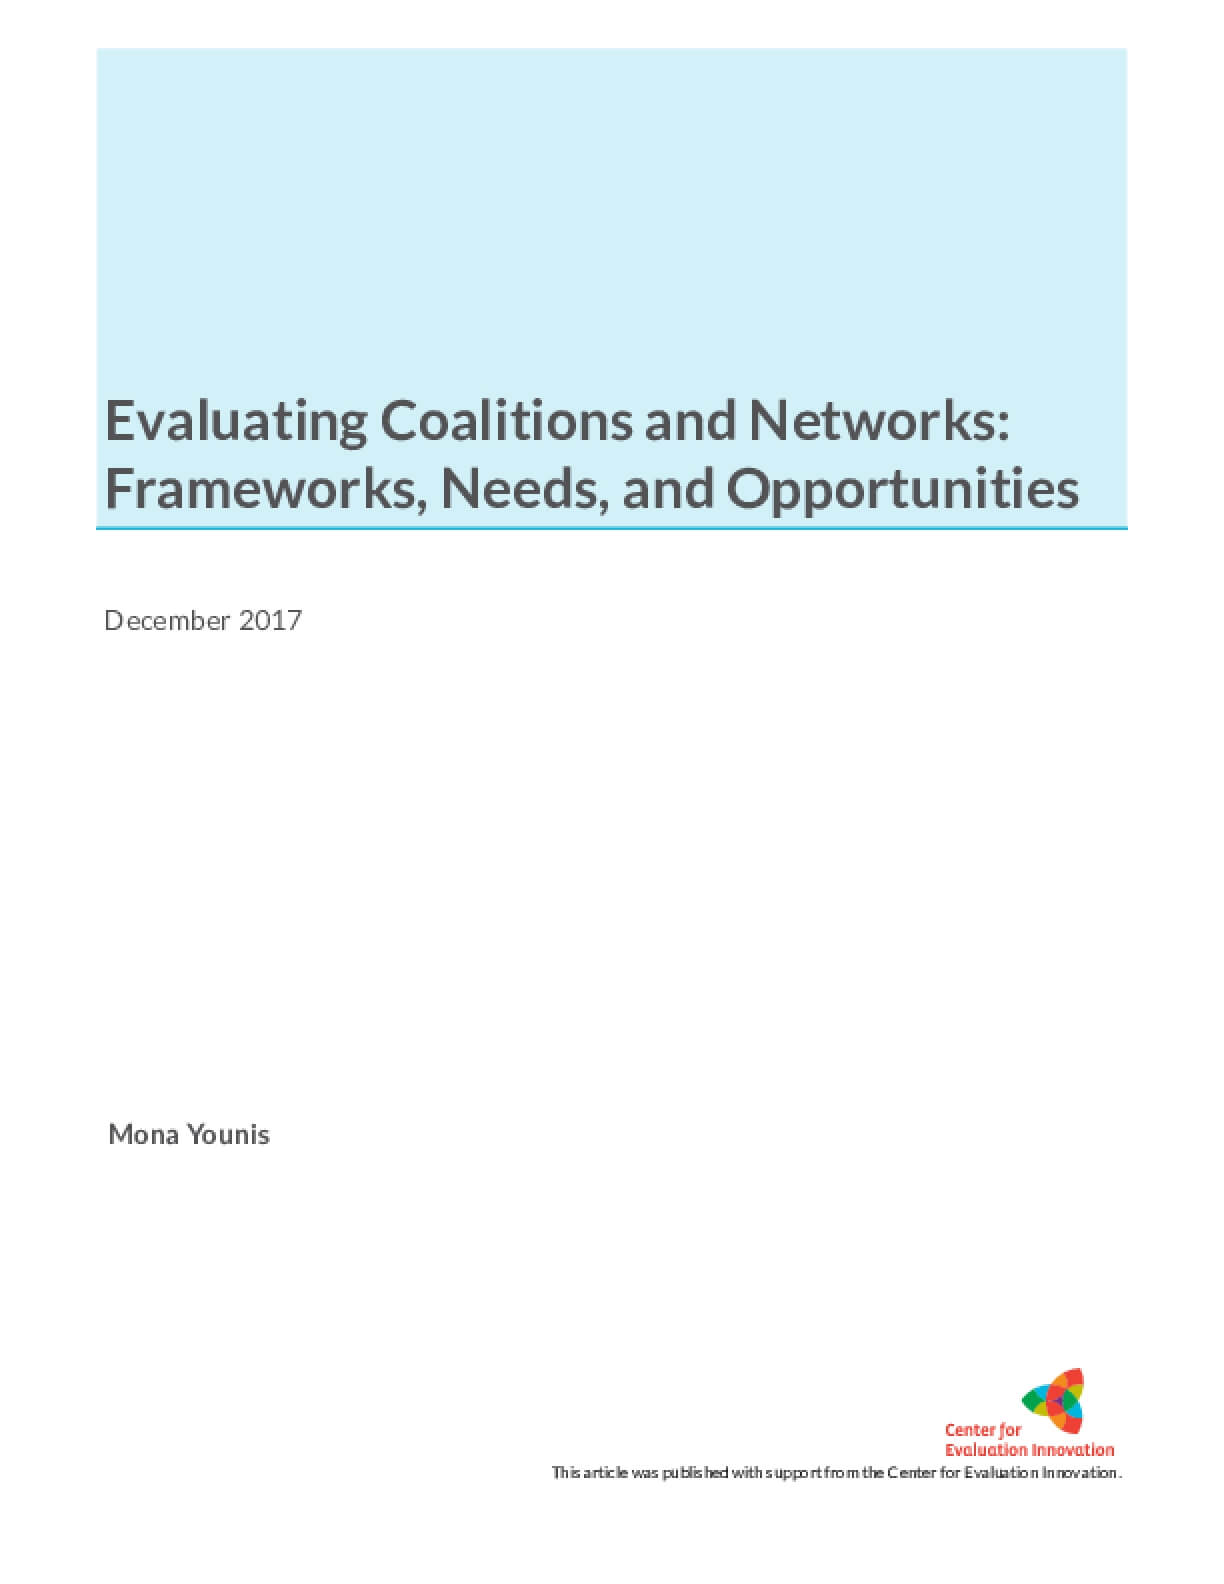 Evaluating Coalitions and Networks: Frameworks, Needs, and Opportunities